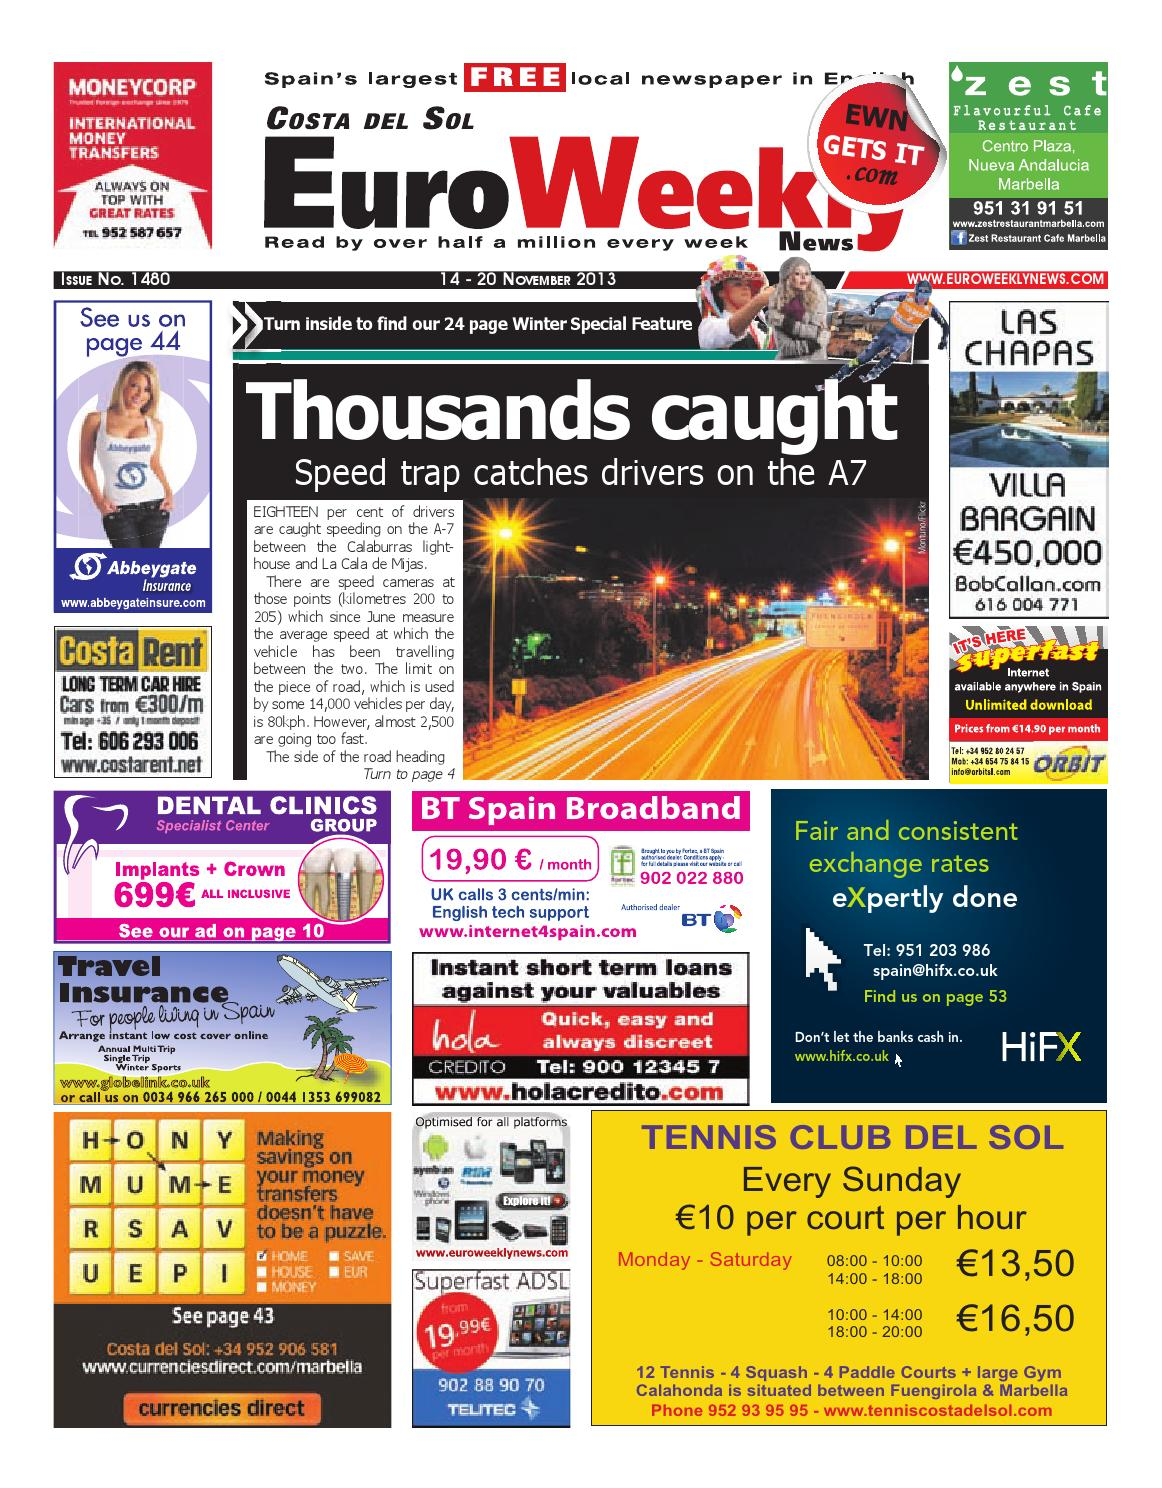 Euro weekly news costa del sol 14 20 november 2013 issue 1480 by euro weekly news costa del sol 14 20 november 2013 issue 1480 by euro weekly news media sa issuu fandeluxe Choice Image